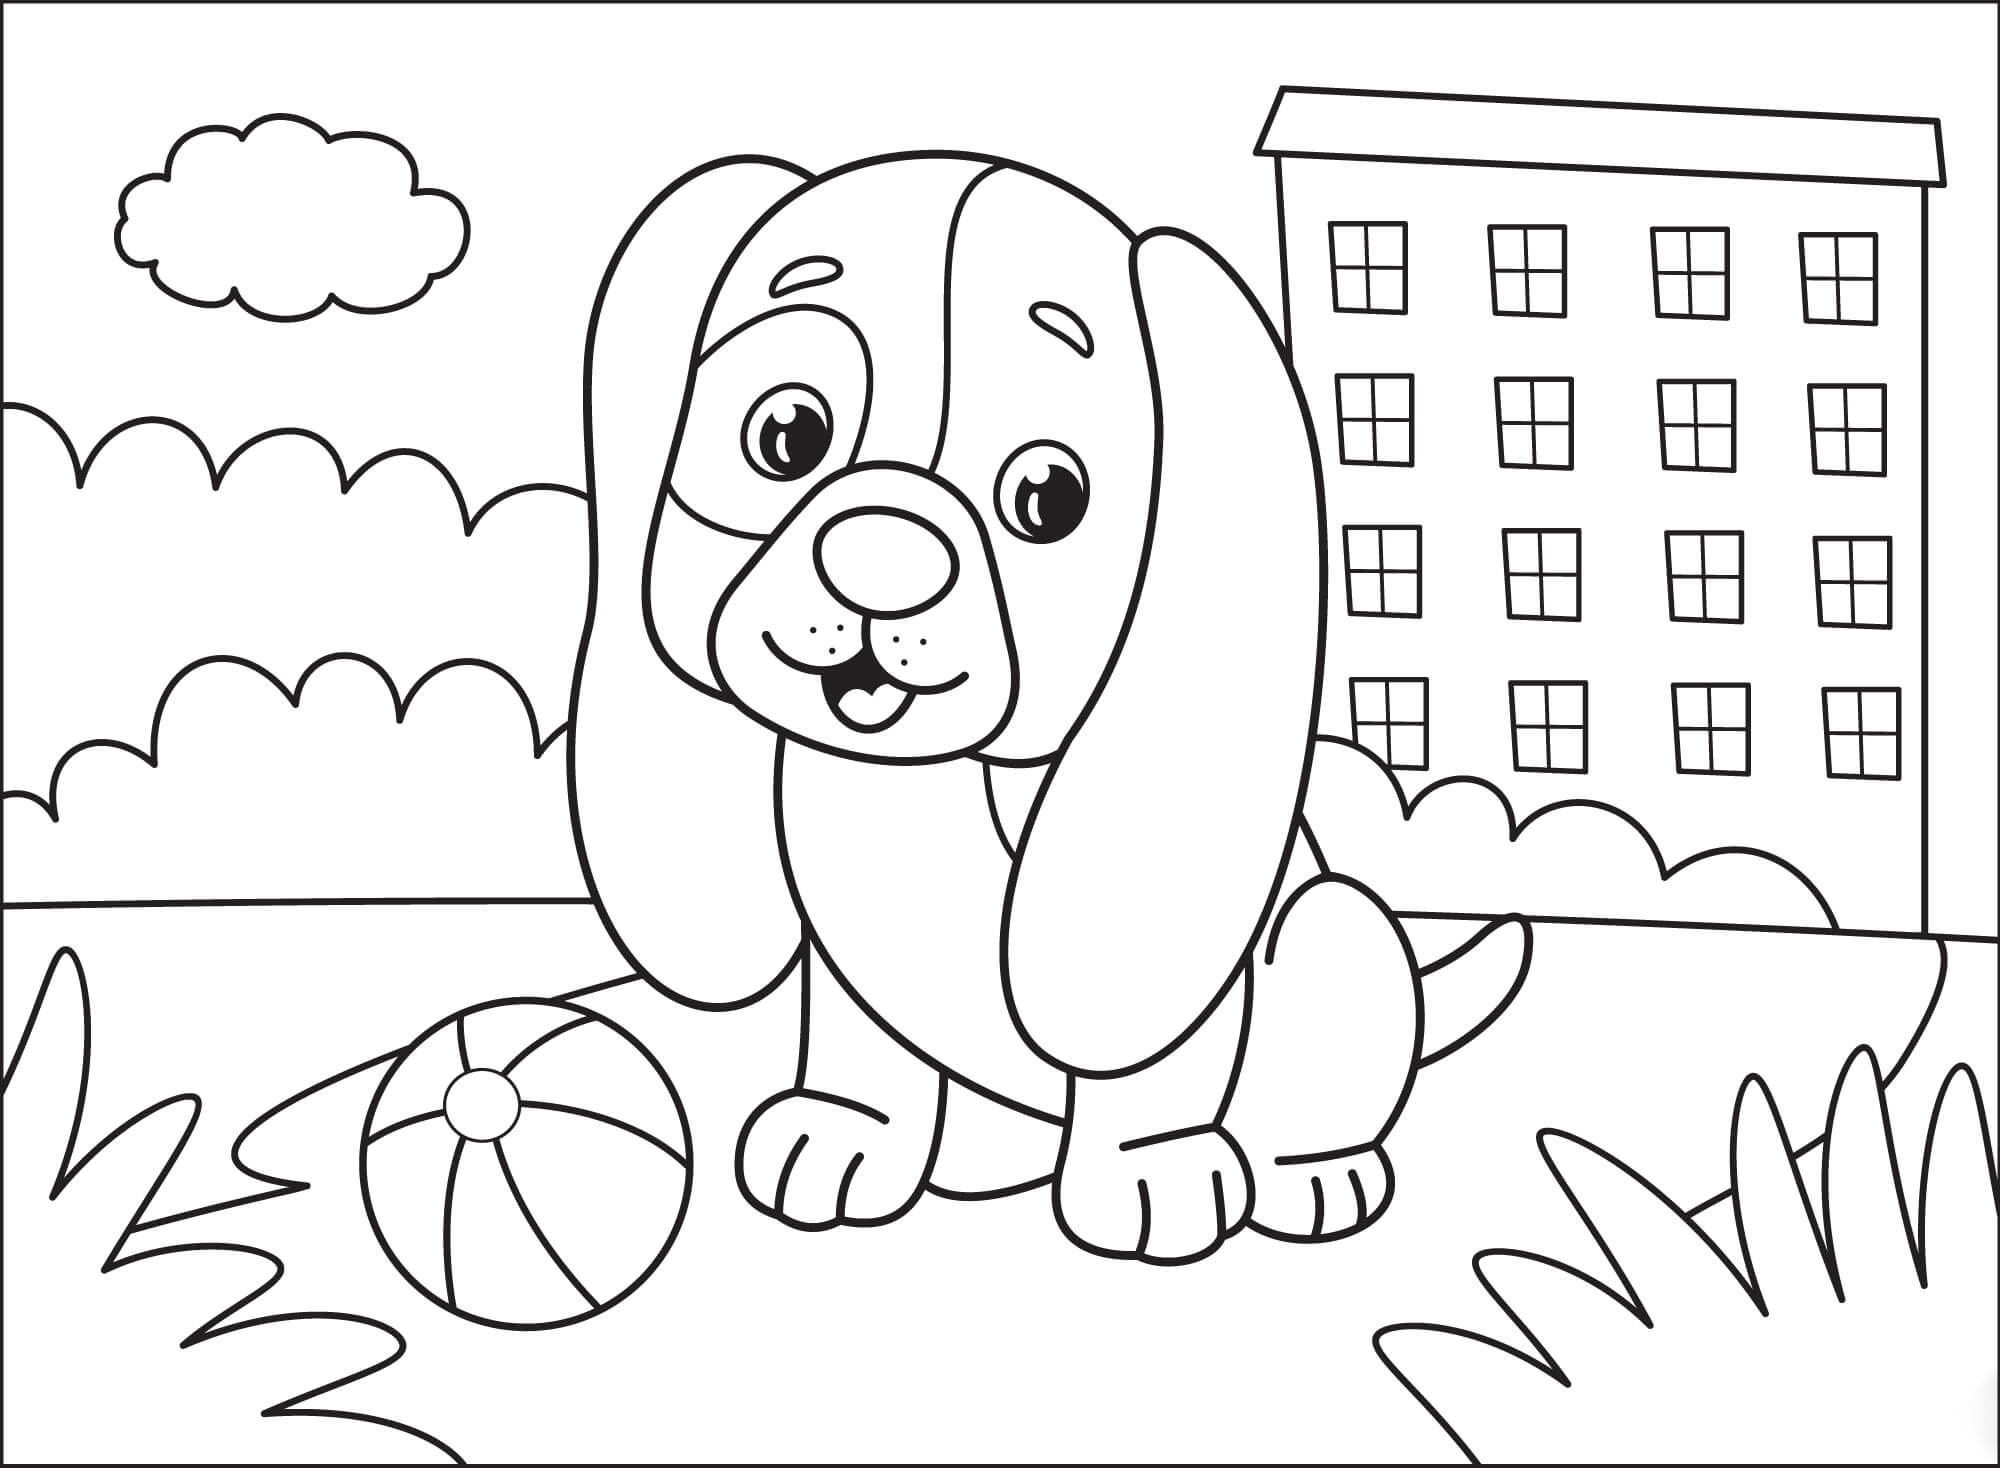 Puppy with long ears Coloring Page